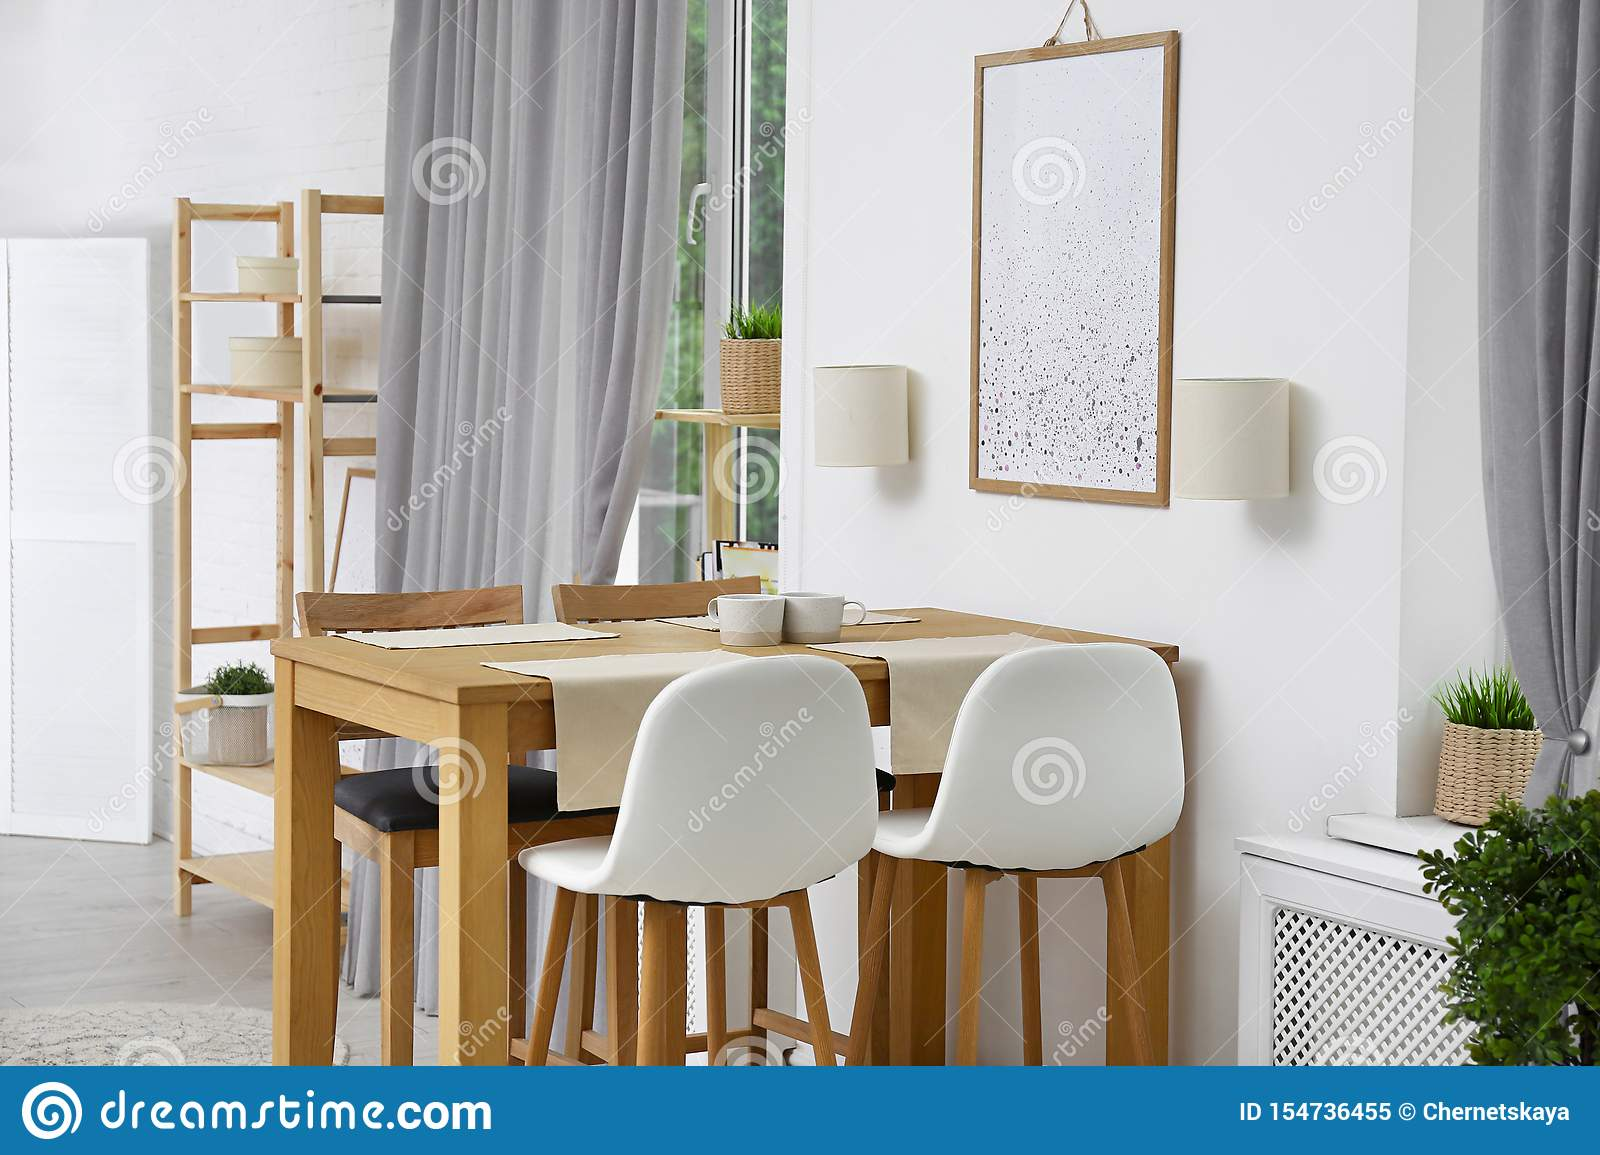 Modern room interior with wooden table